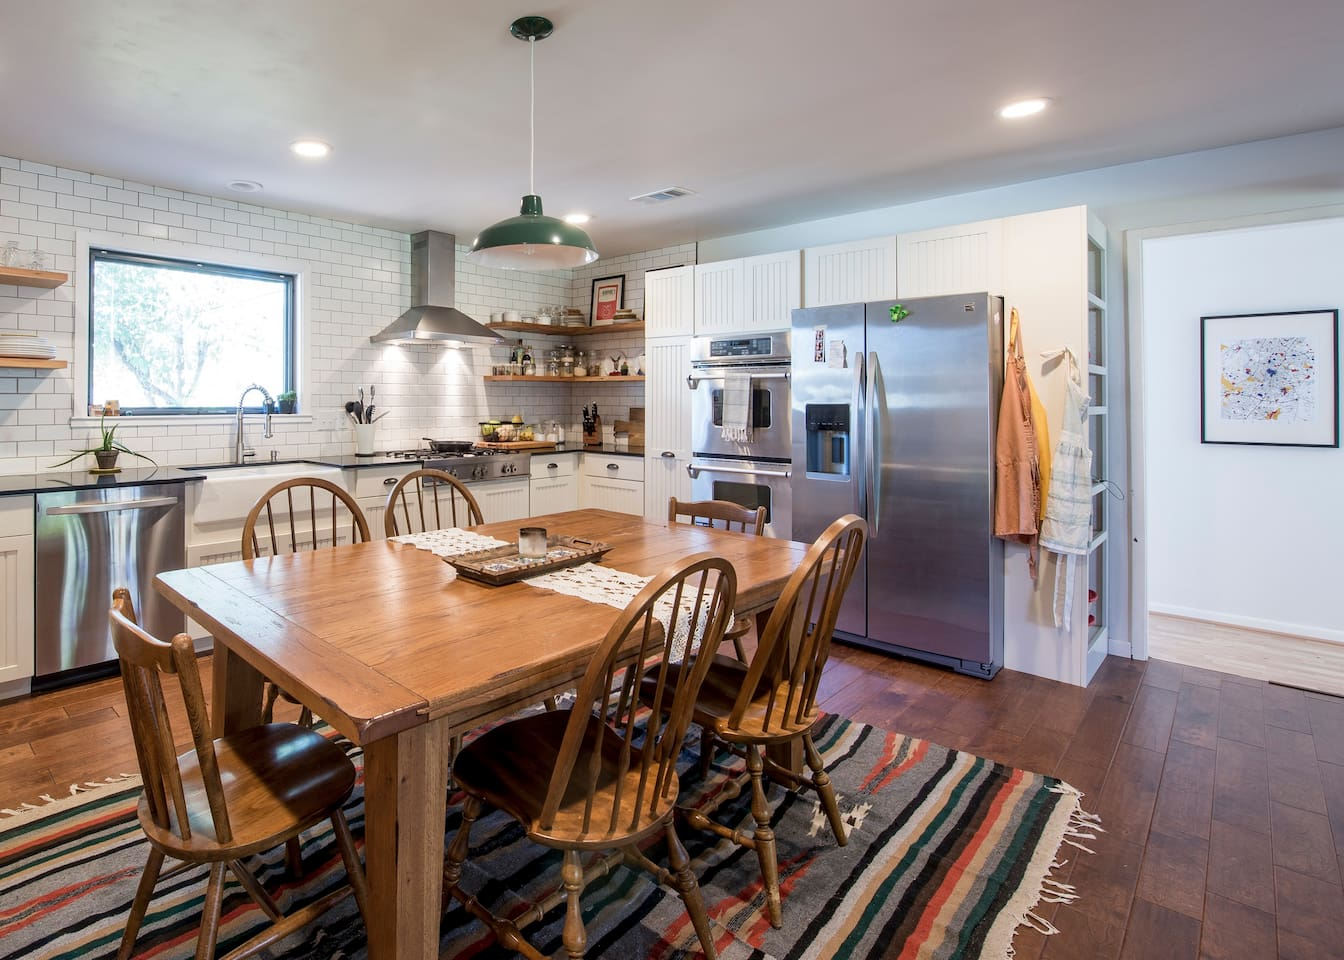 Our brand new kitchen featuring 6-burner gas rangetop, double oven, farmhouse sink, and a table that comfortably seats 10.